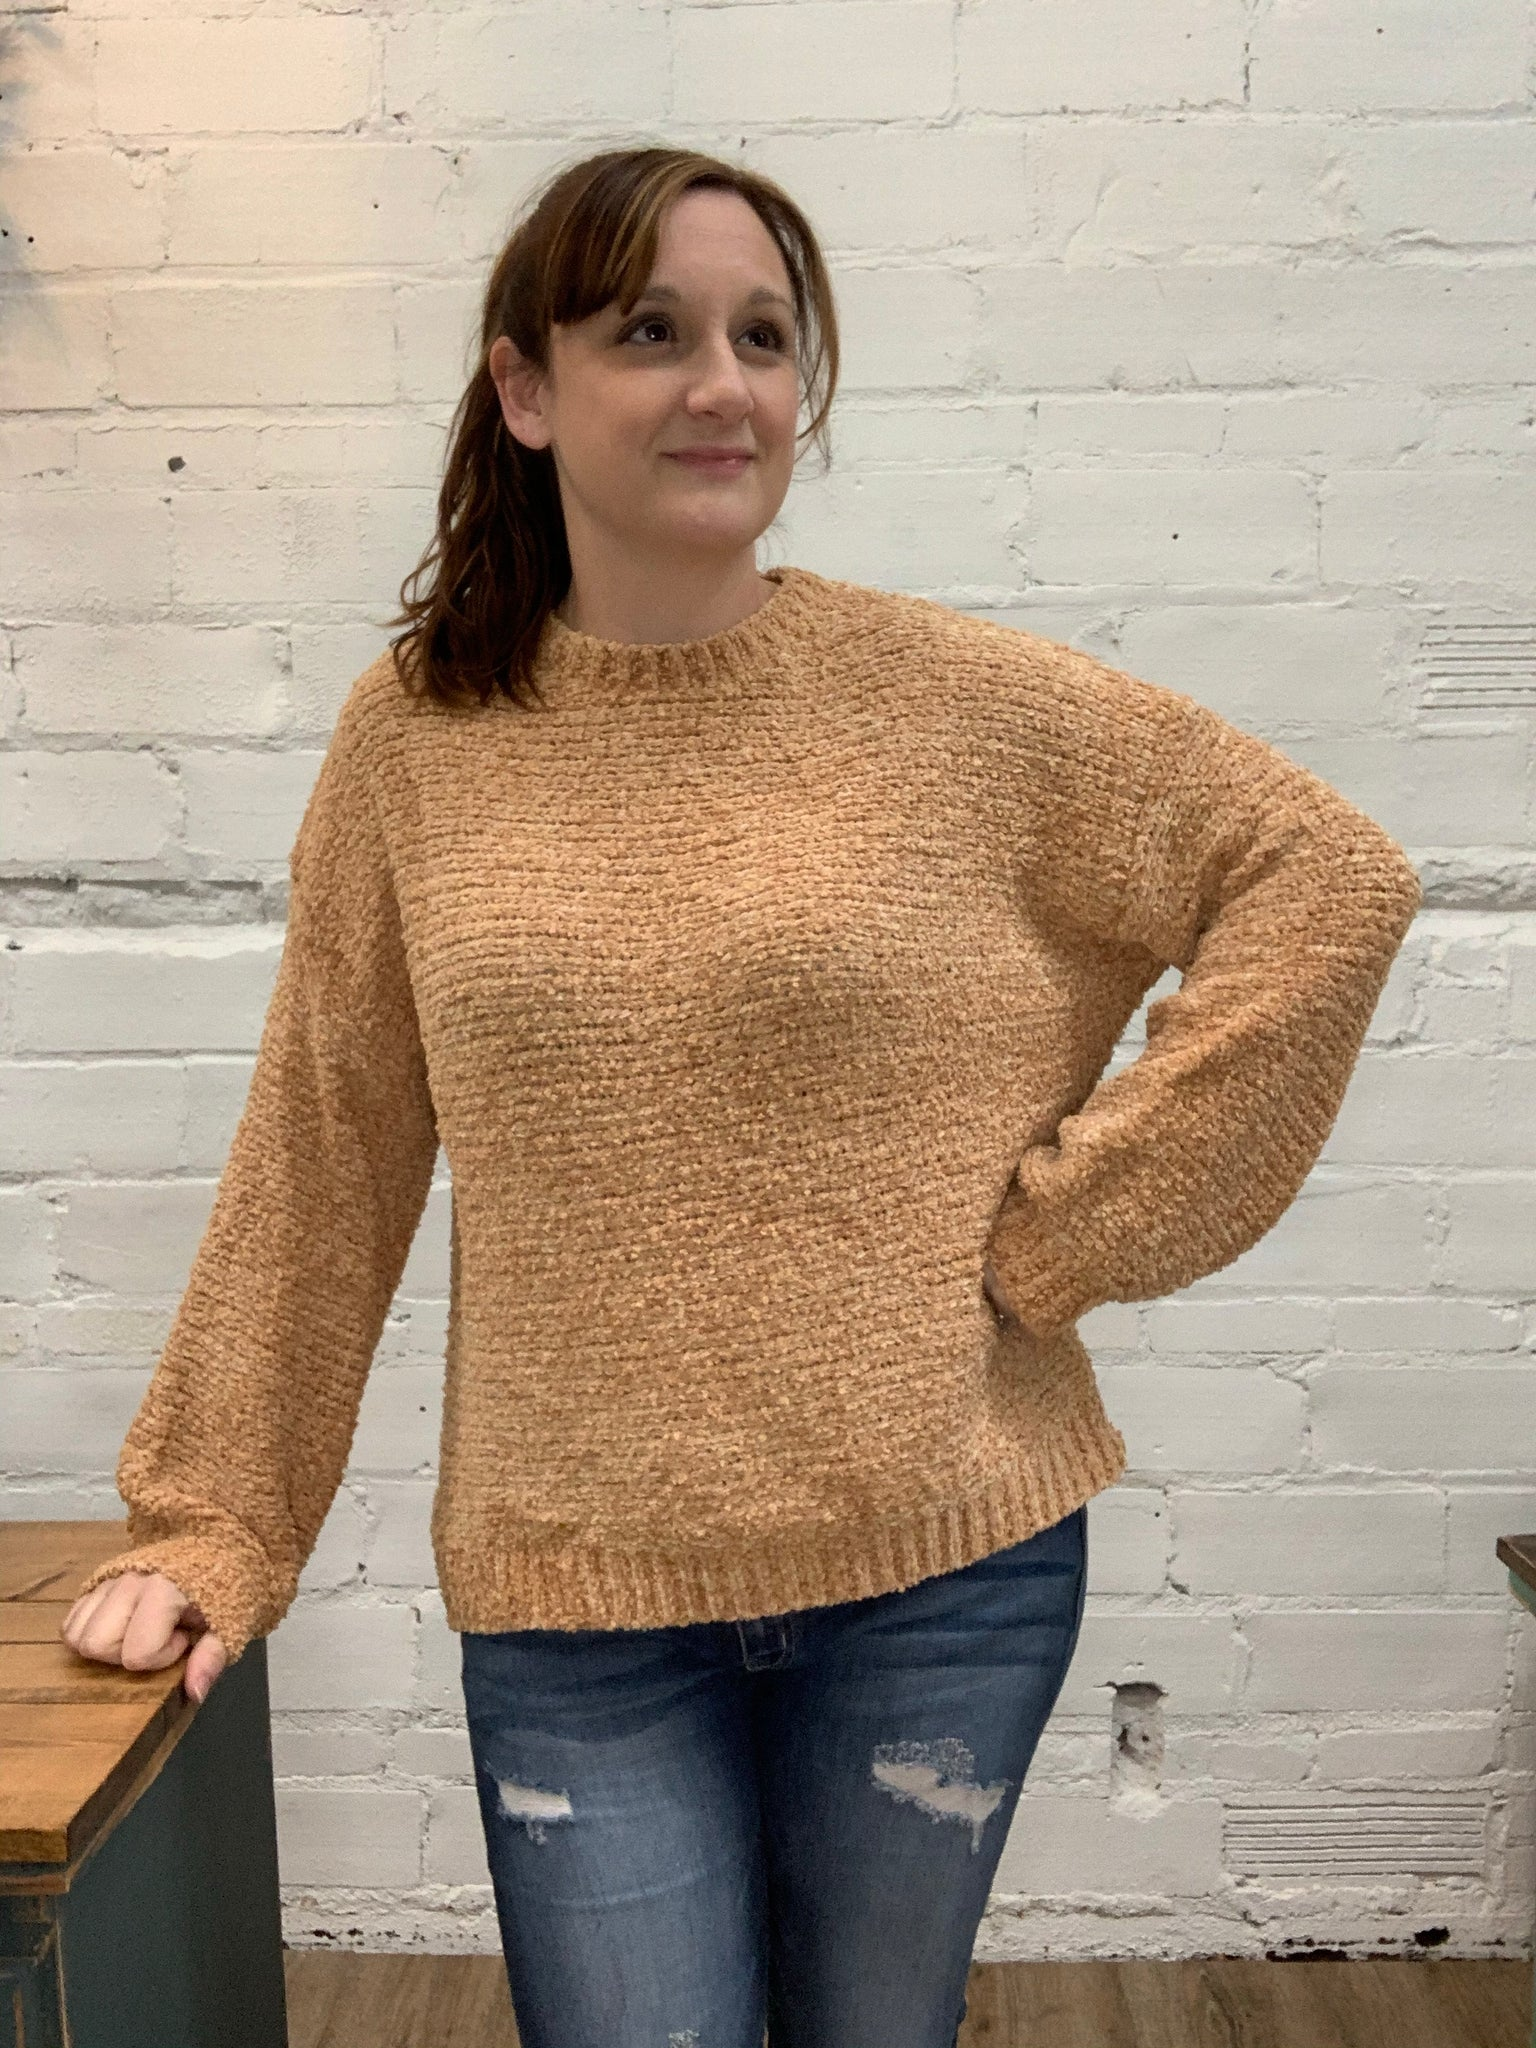 Textured Knit Chenile Pullover Sweater in Butterscotch